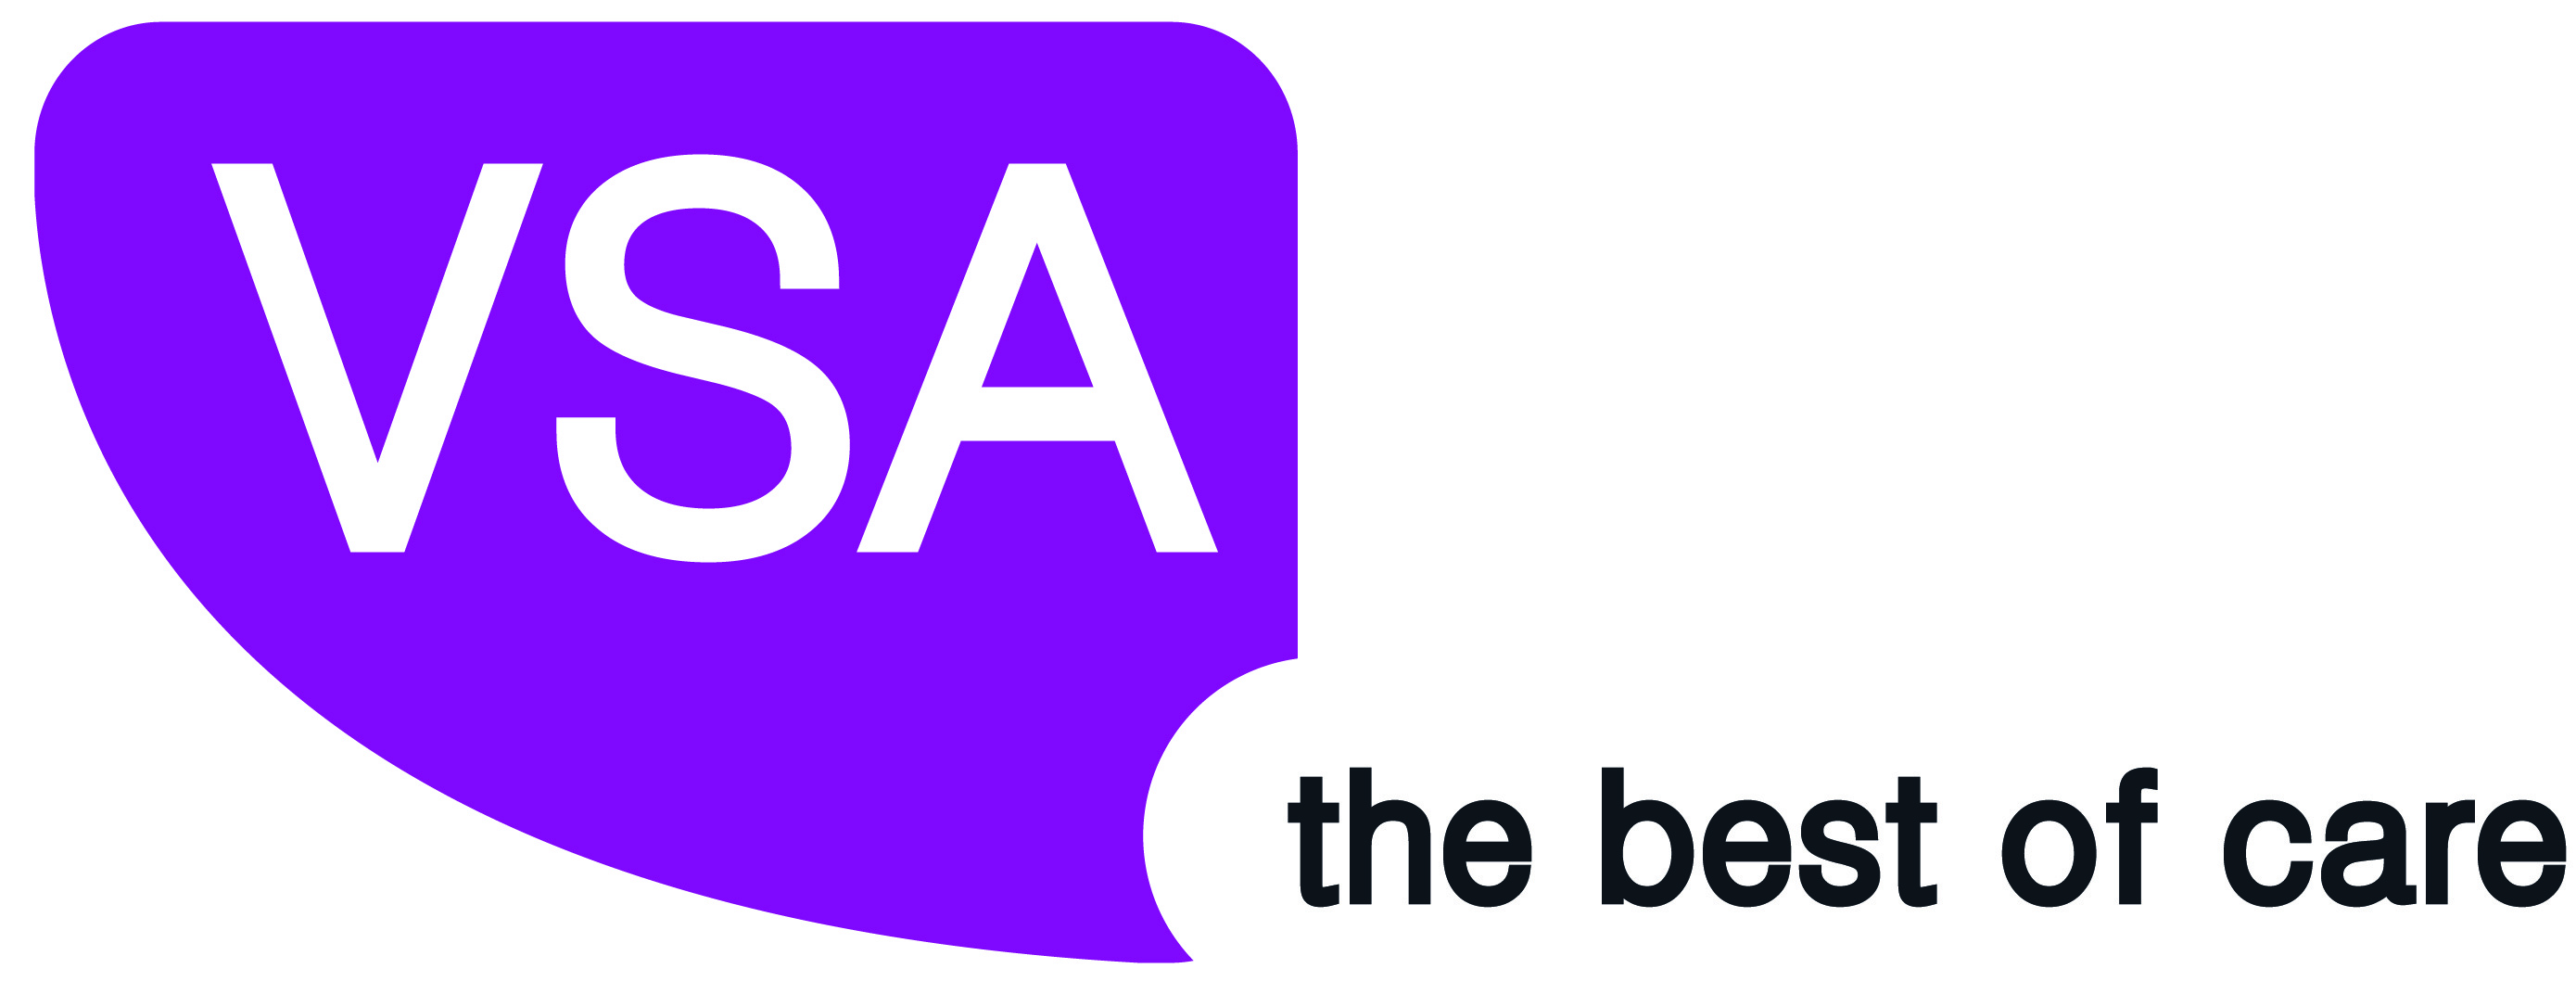 VSA_Logo_purple high res-01